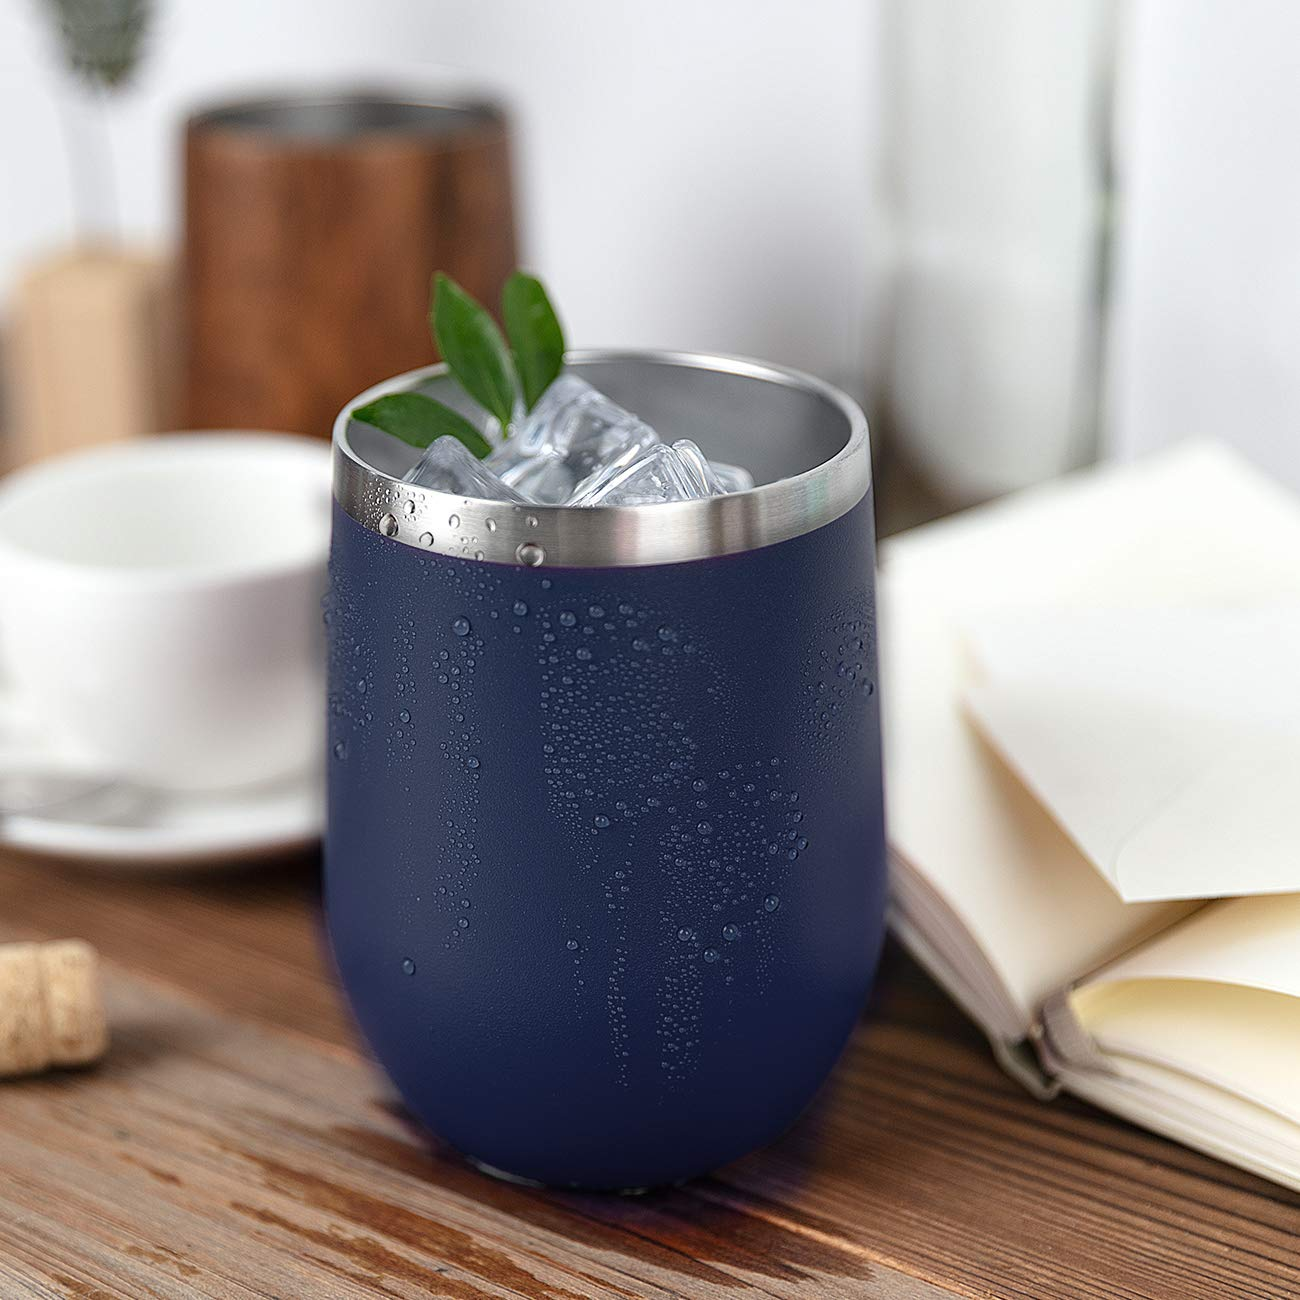 ONEB Stainless Steel Wine Tumbler with Lid, 12 OZ | Double Wall Vacuum Insulated Travel Tumbler Cup for Coffee, Wine, Cocktails, Ice Cream Cup With Lid (Navy, 12OZ-8pack) by ONEB (Image #7)